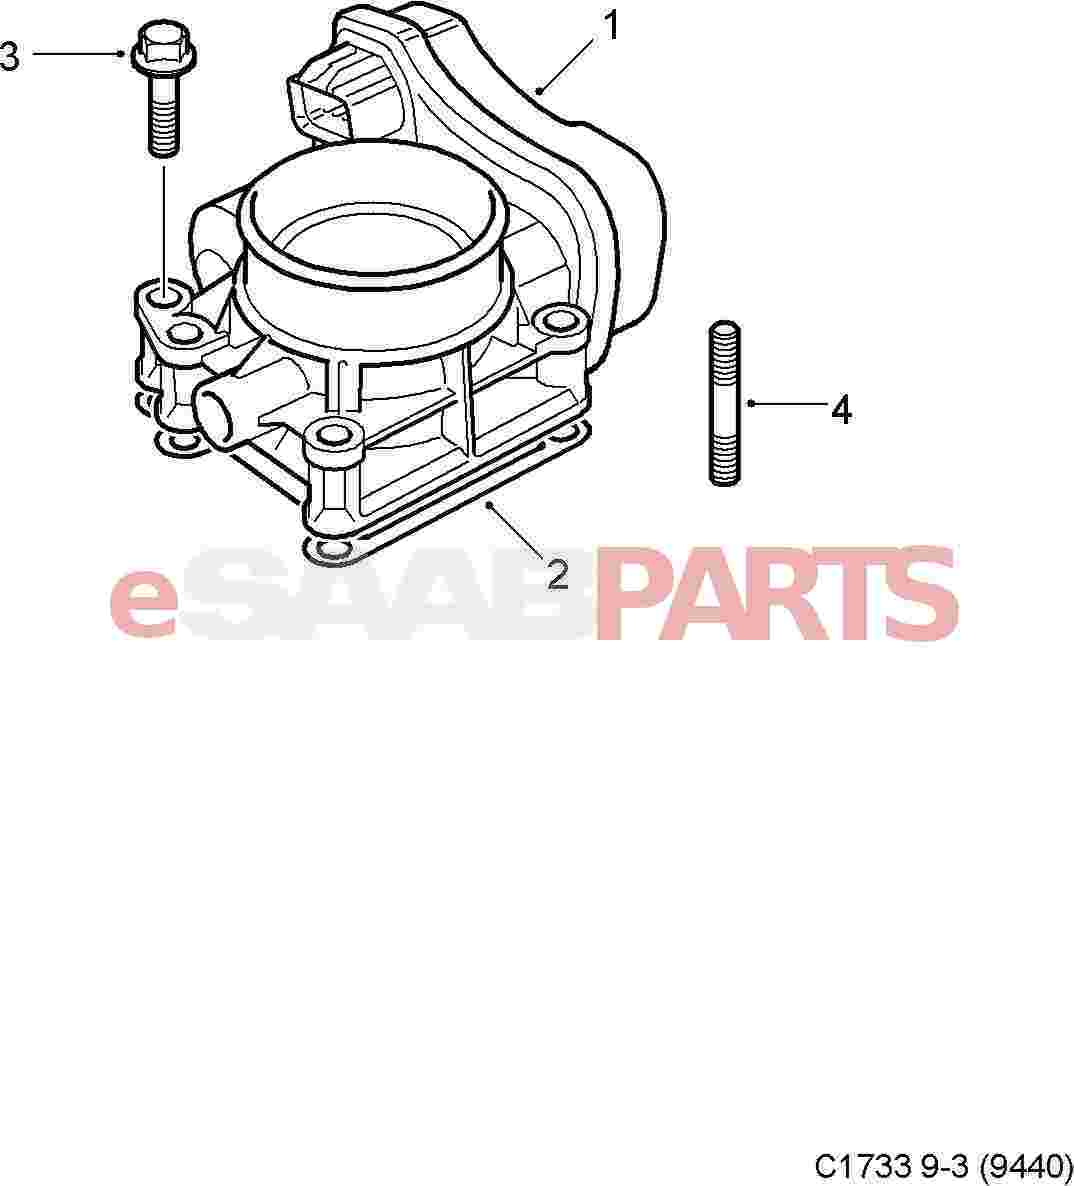 99 Saab 9 3 Parts Diagram. Saab. Auto Wiring Diagram